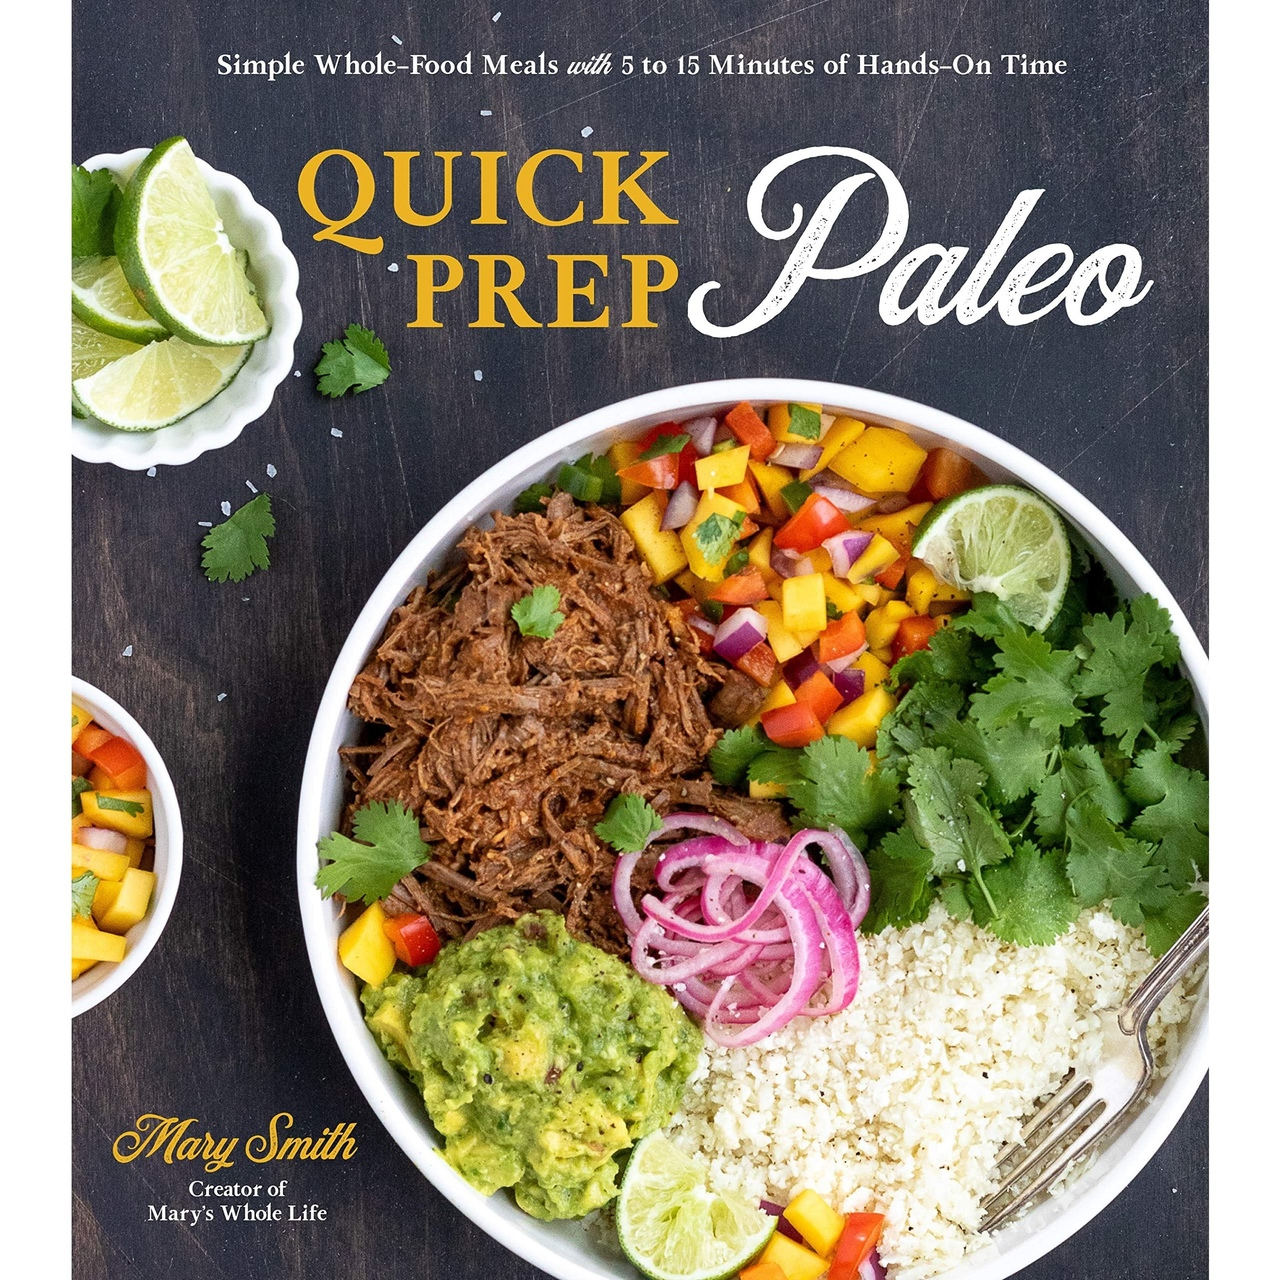 Quick Prep Paleo: Simple Whole-Food Meals With 5 To 15 Minutes Of Hands-On Time By Mary Smith